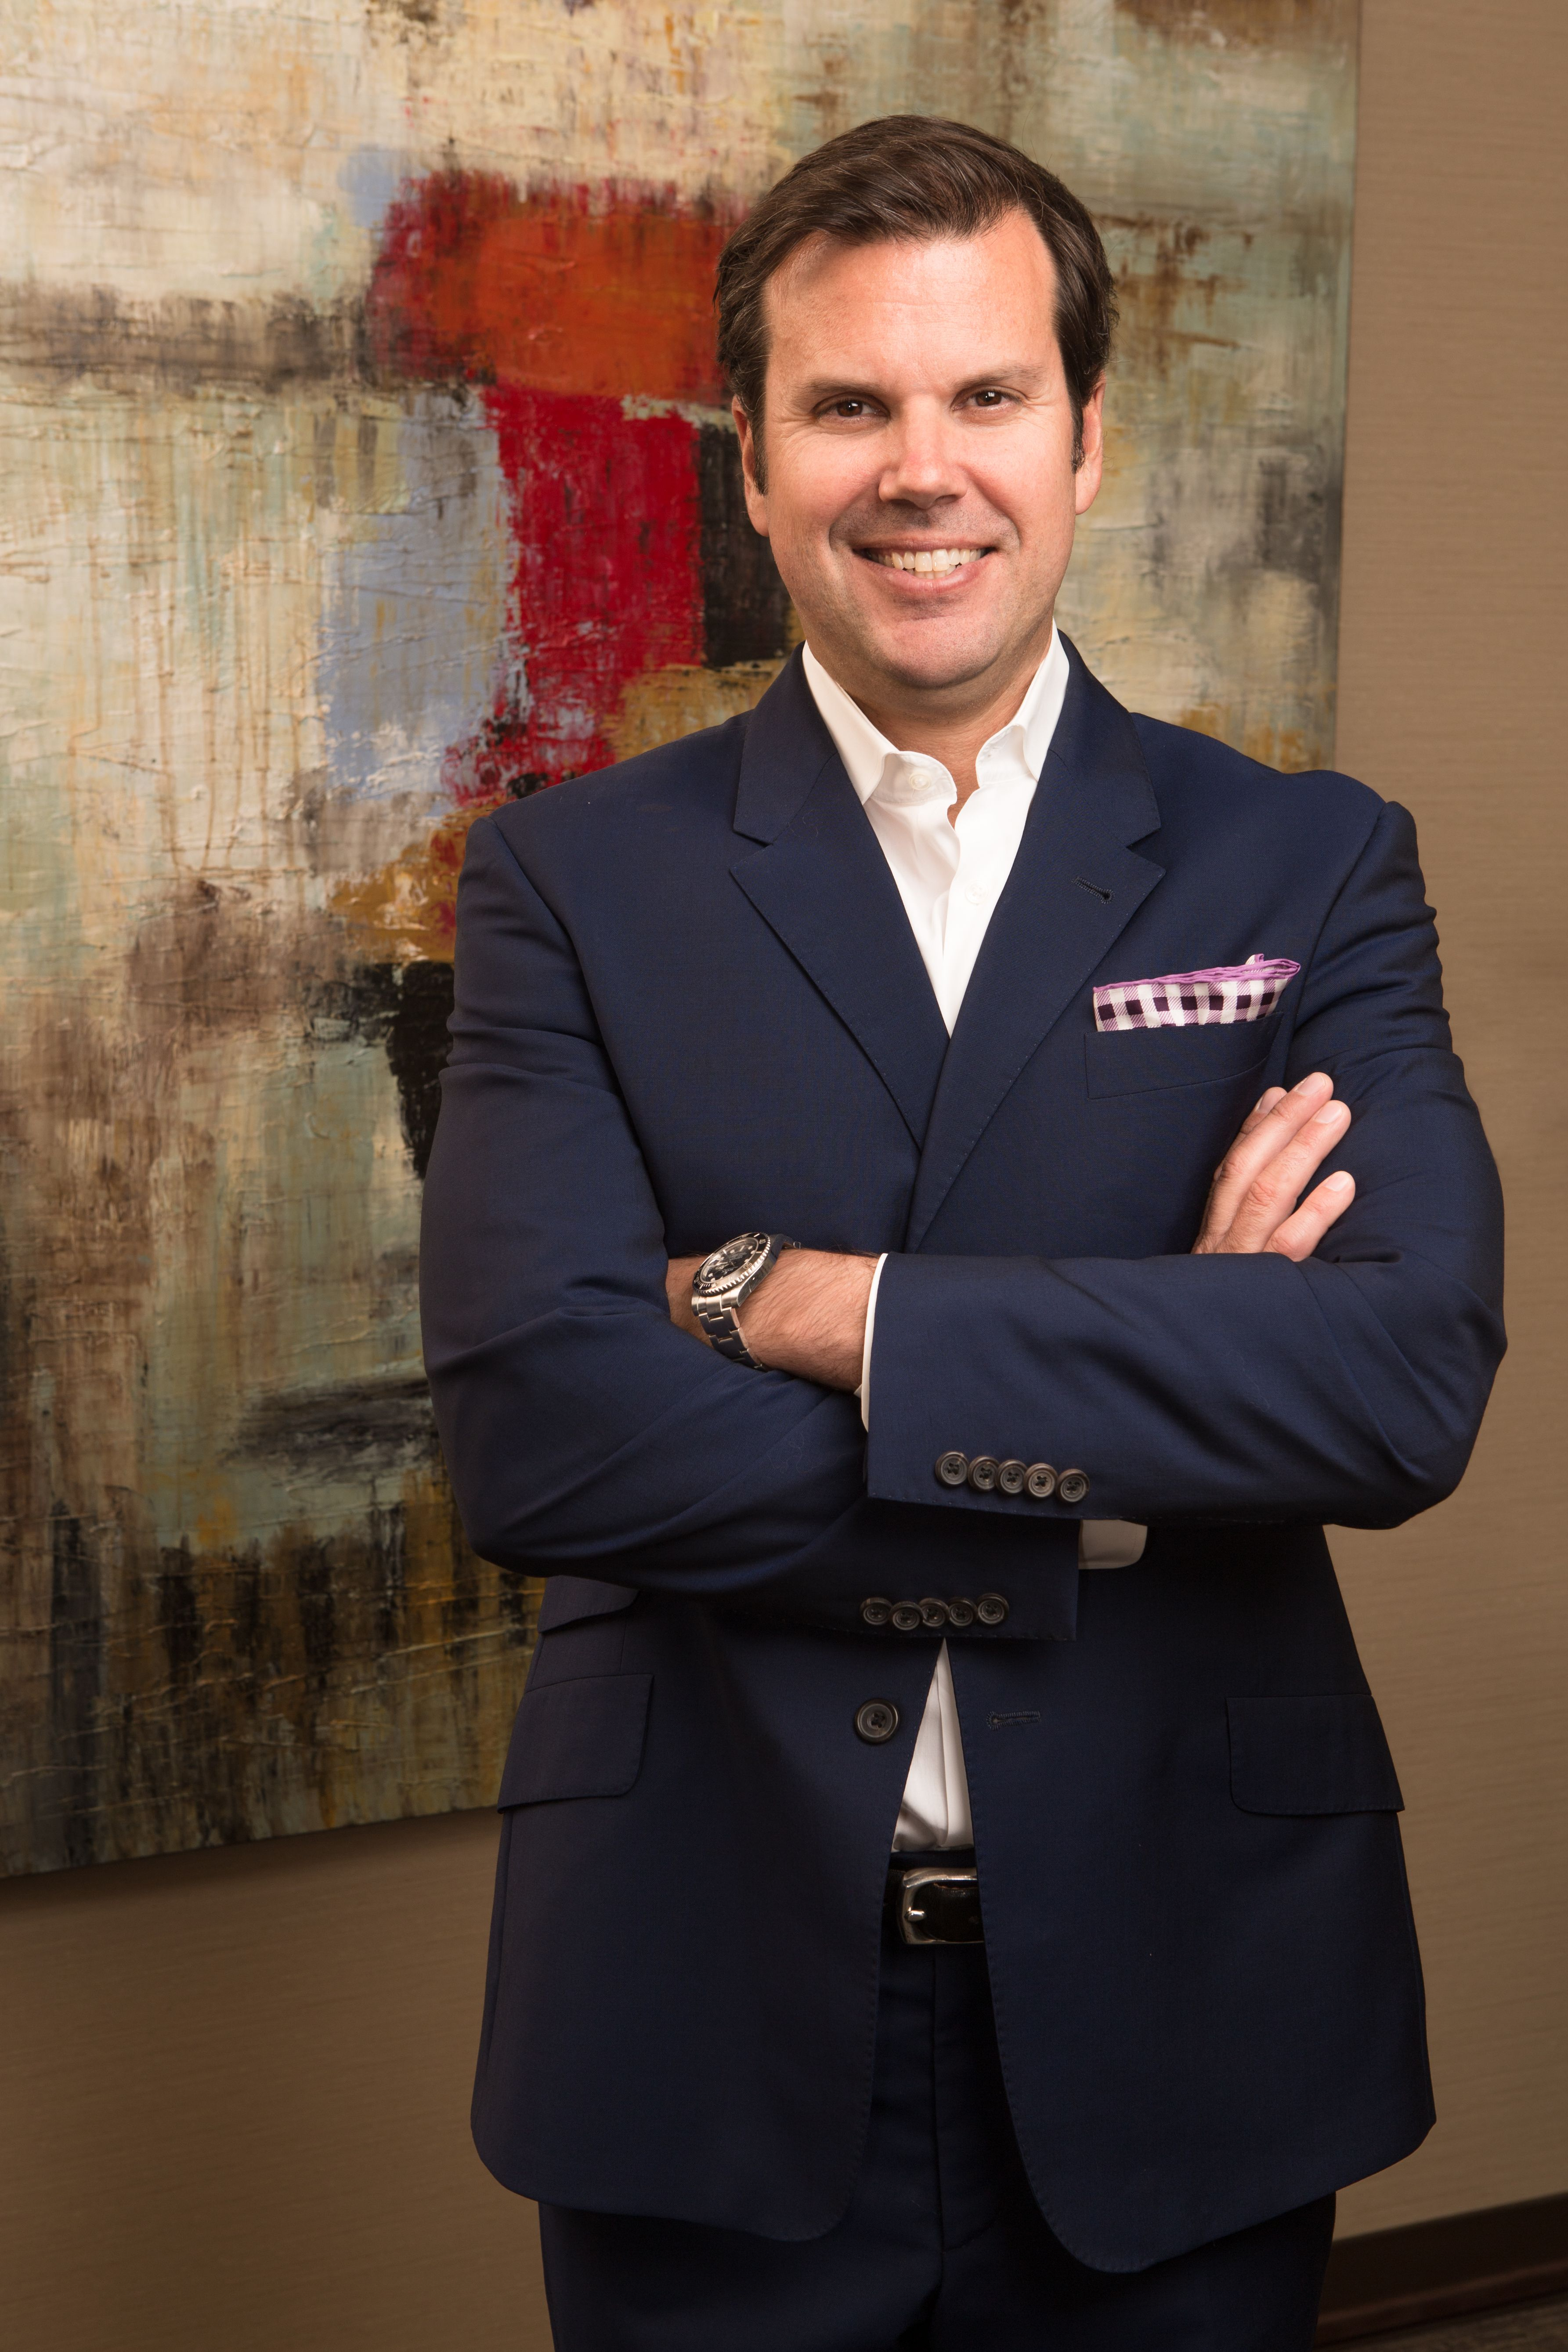 Dr andrew smith is boardcertified plastic surgeon in